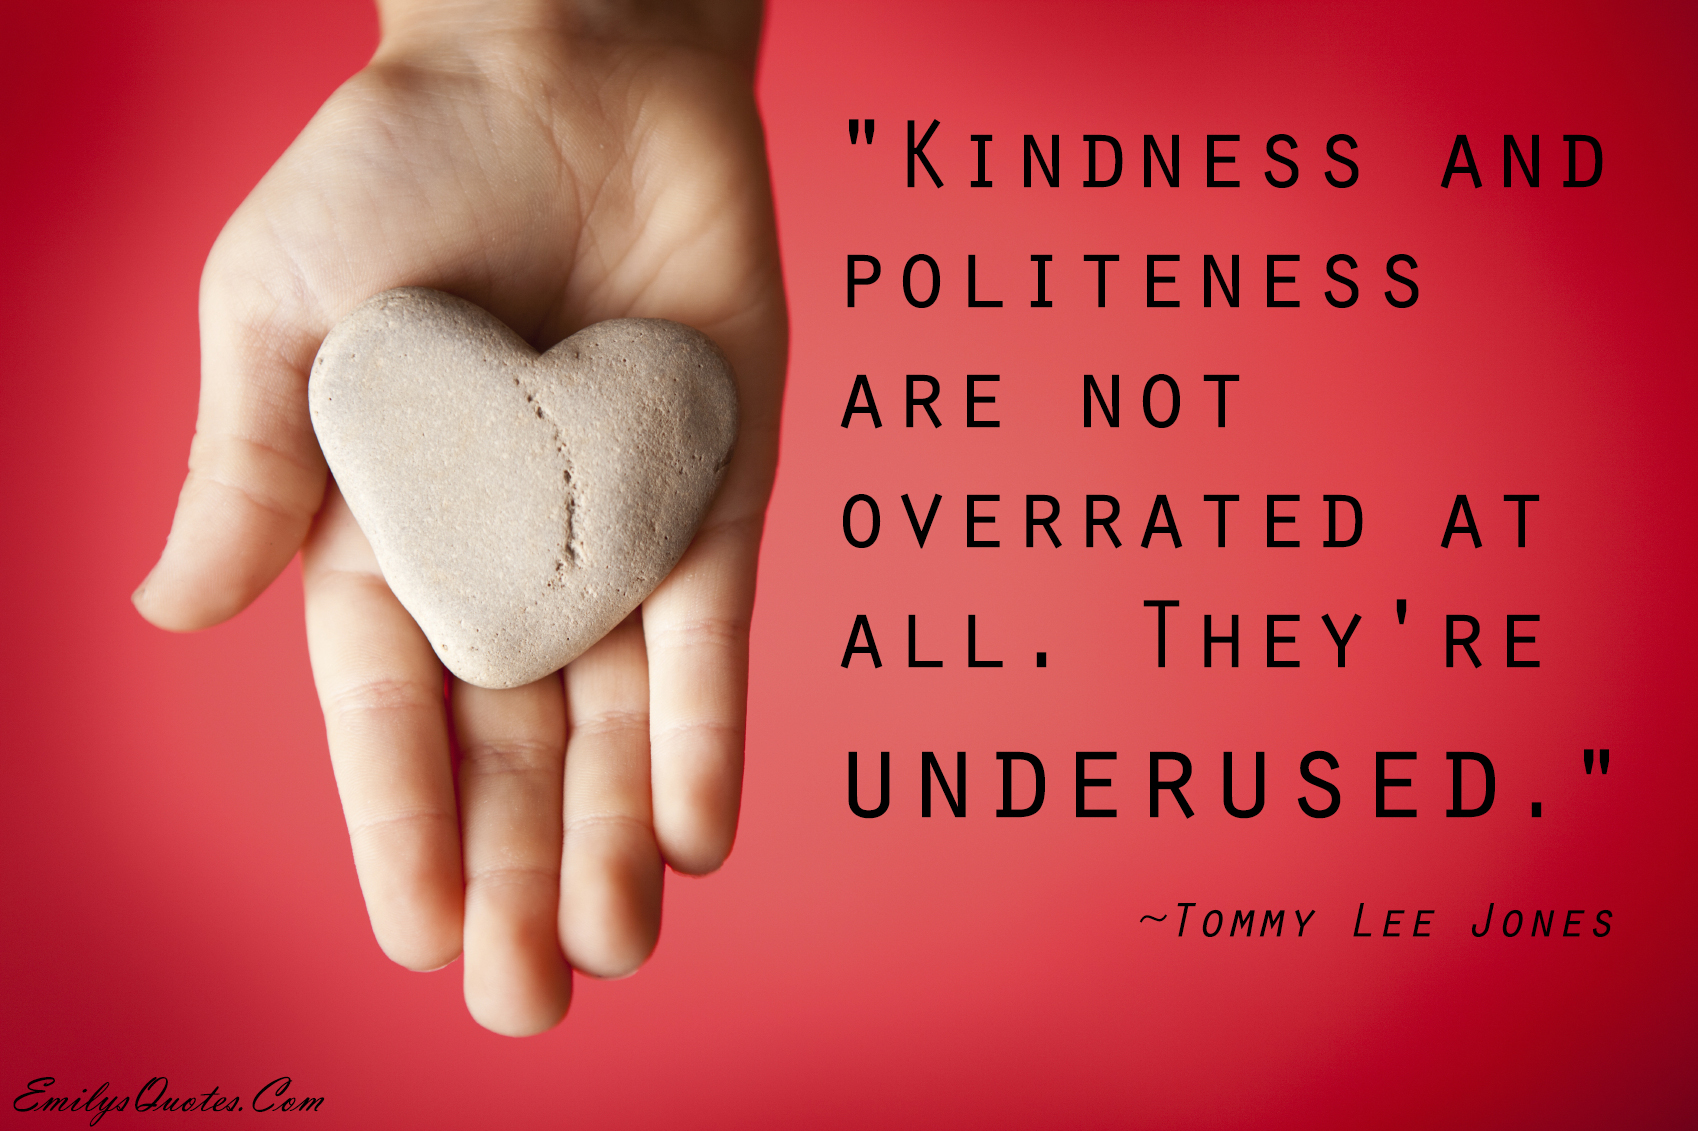 EmilysQuotes.Com-kindness-politenessTommy-Lee-Jones.jpg